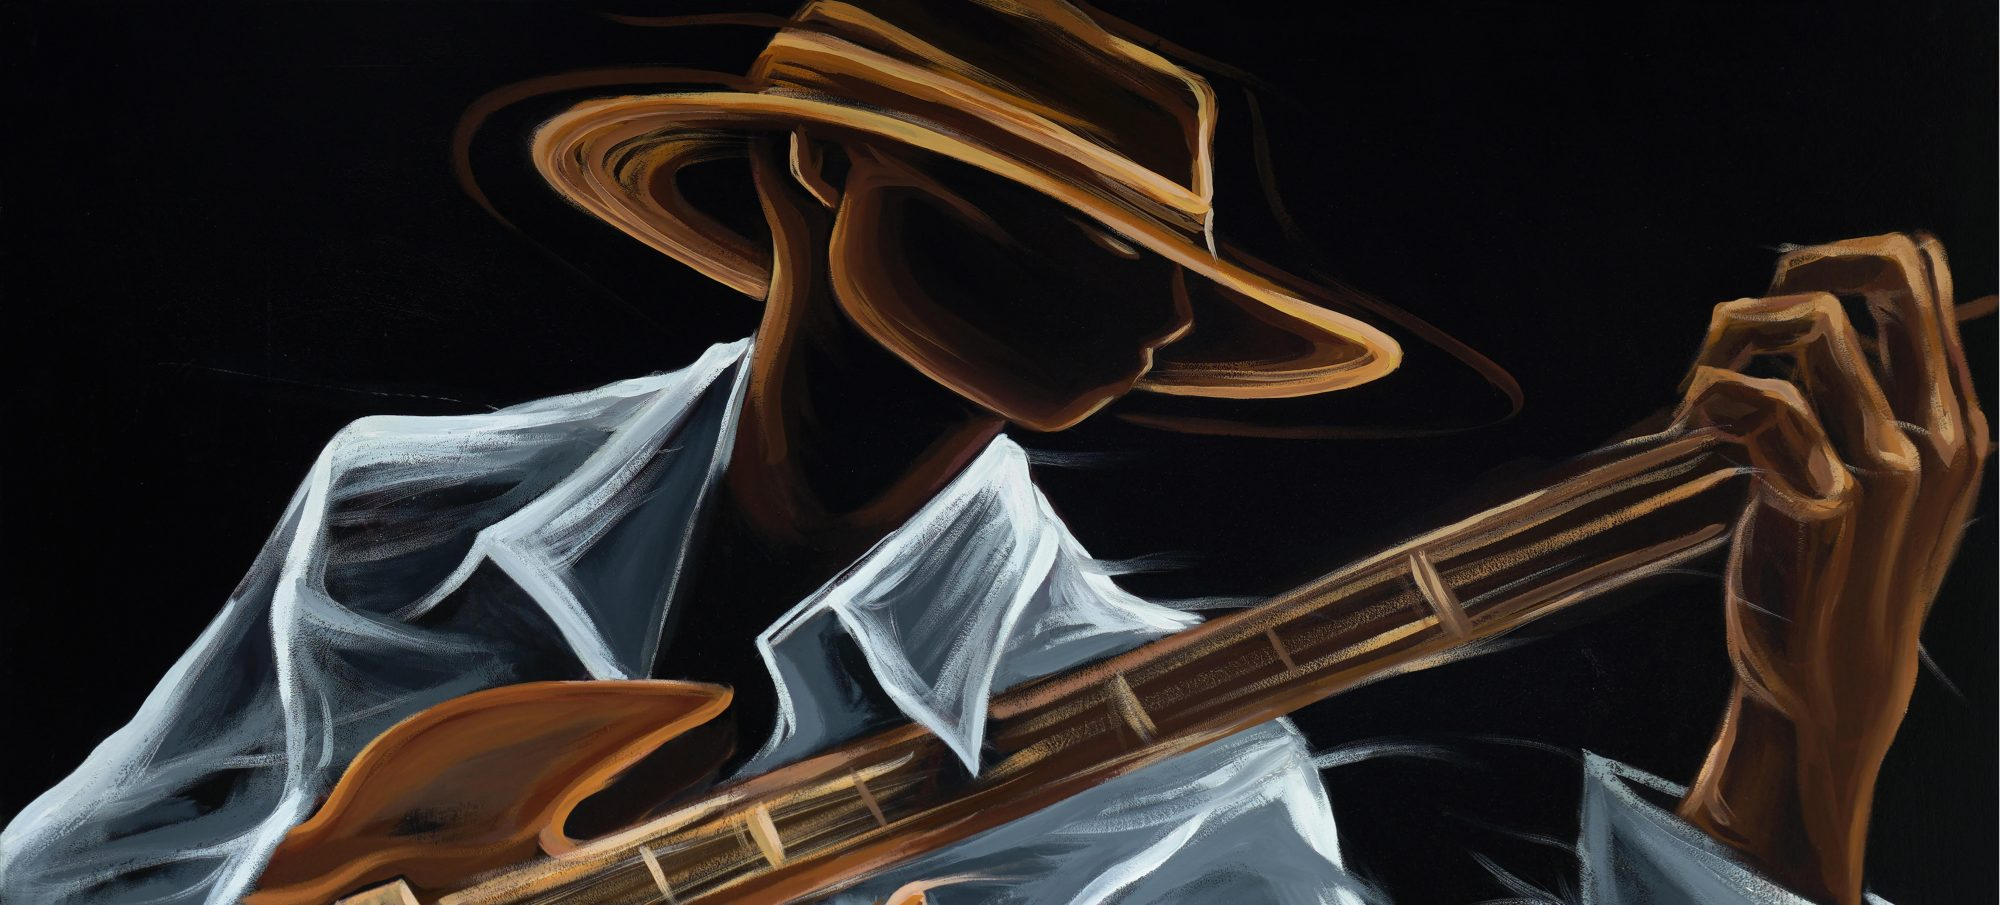 The Silent Guitar: Paintings by Sharif Carter